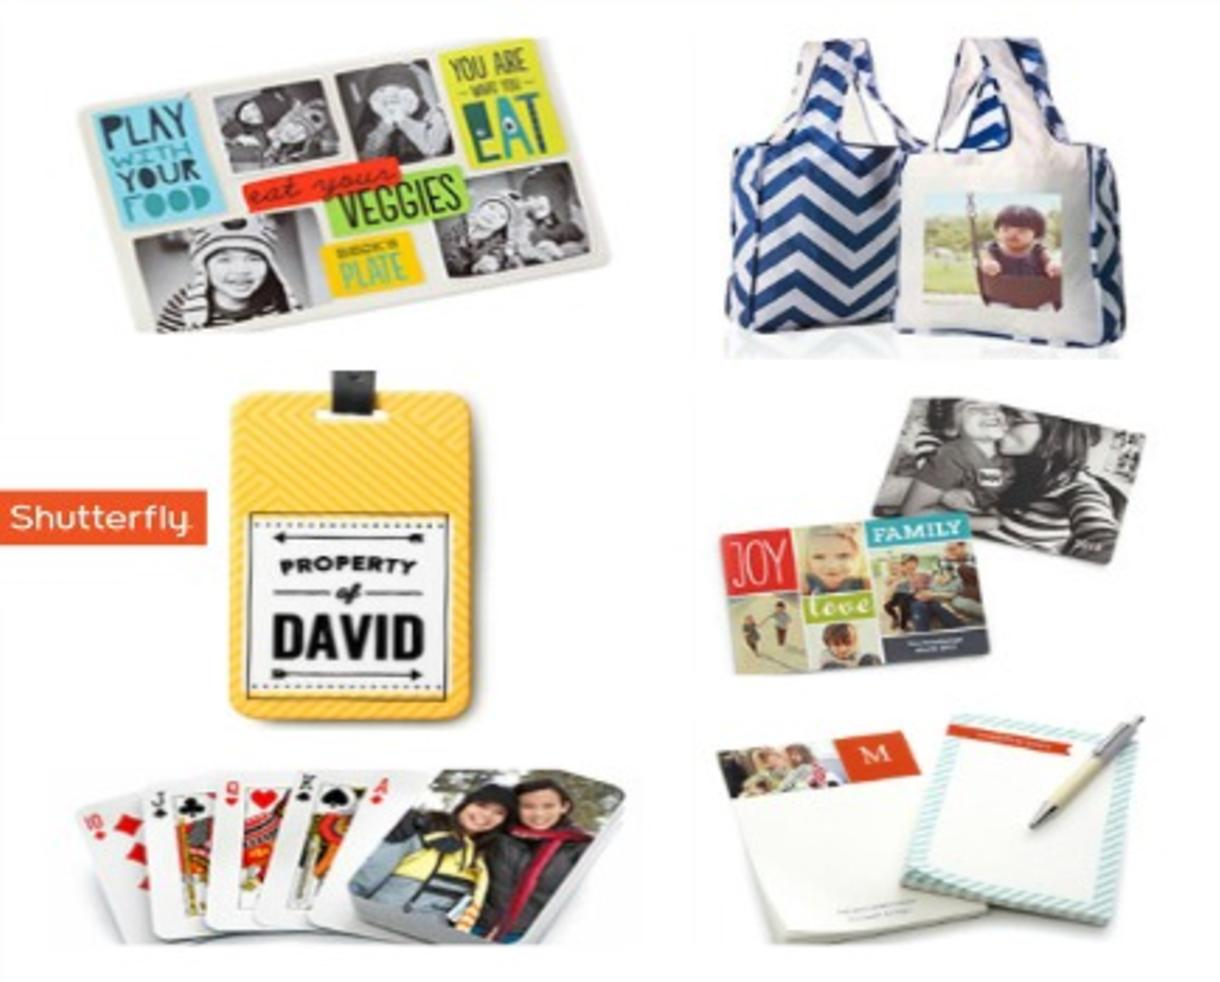 FREE Personalized Gift of Choice from SHUTTERFLY - 8 Options! No Purchase Necessary! (Up to $19.99 Value)